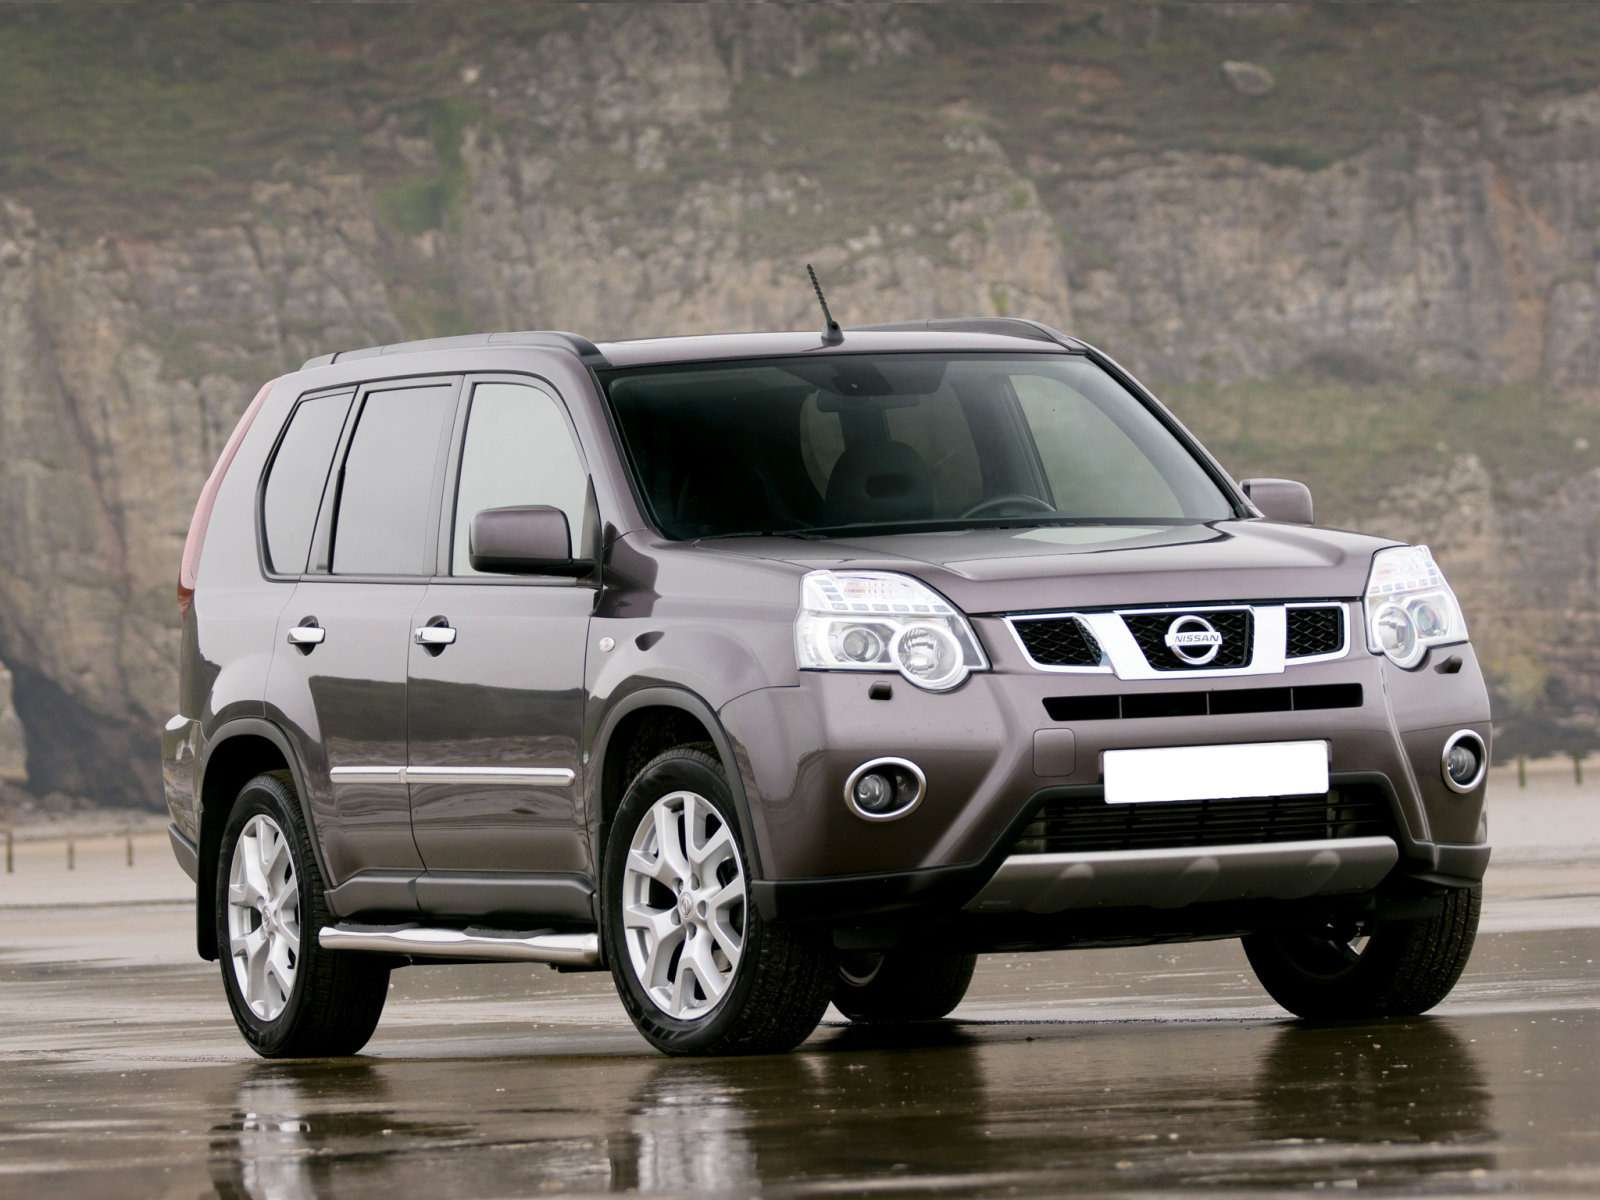 Nissan_X-Trail_SUV 5 door_2011